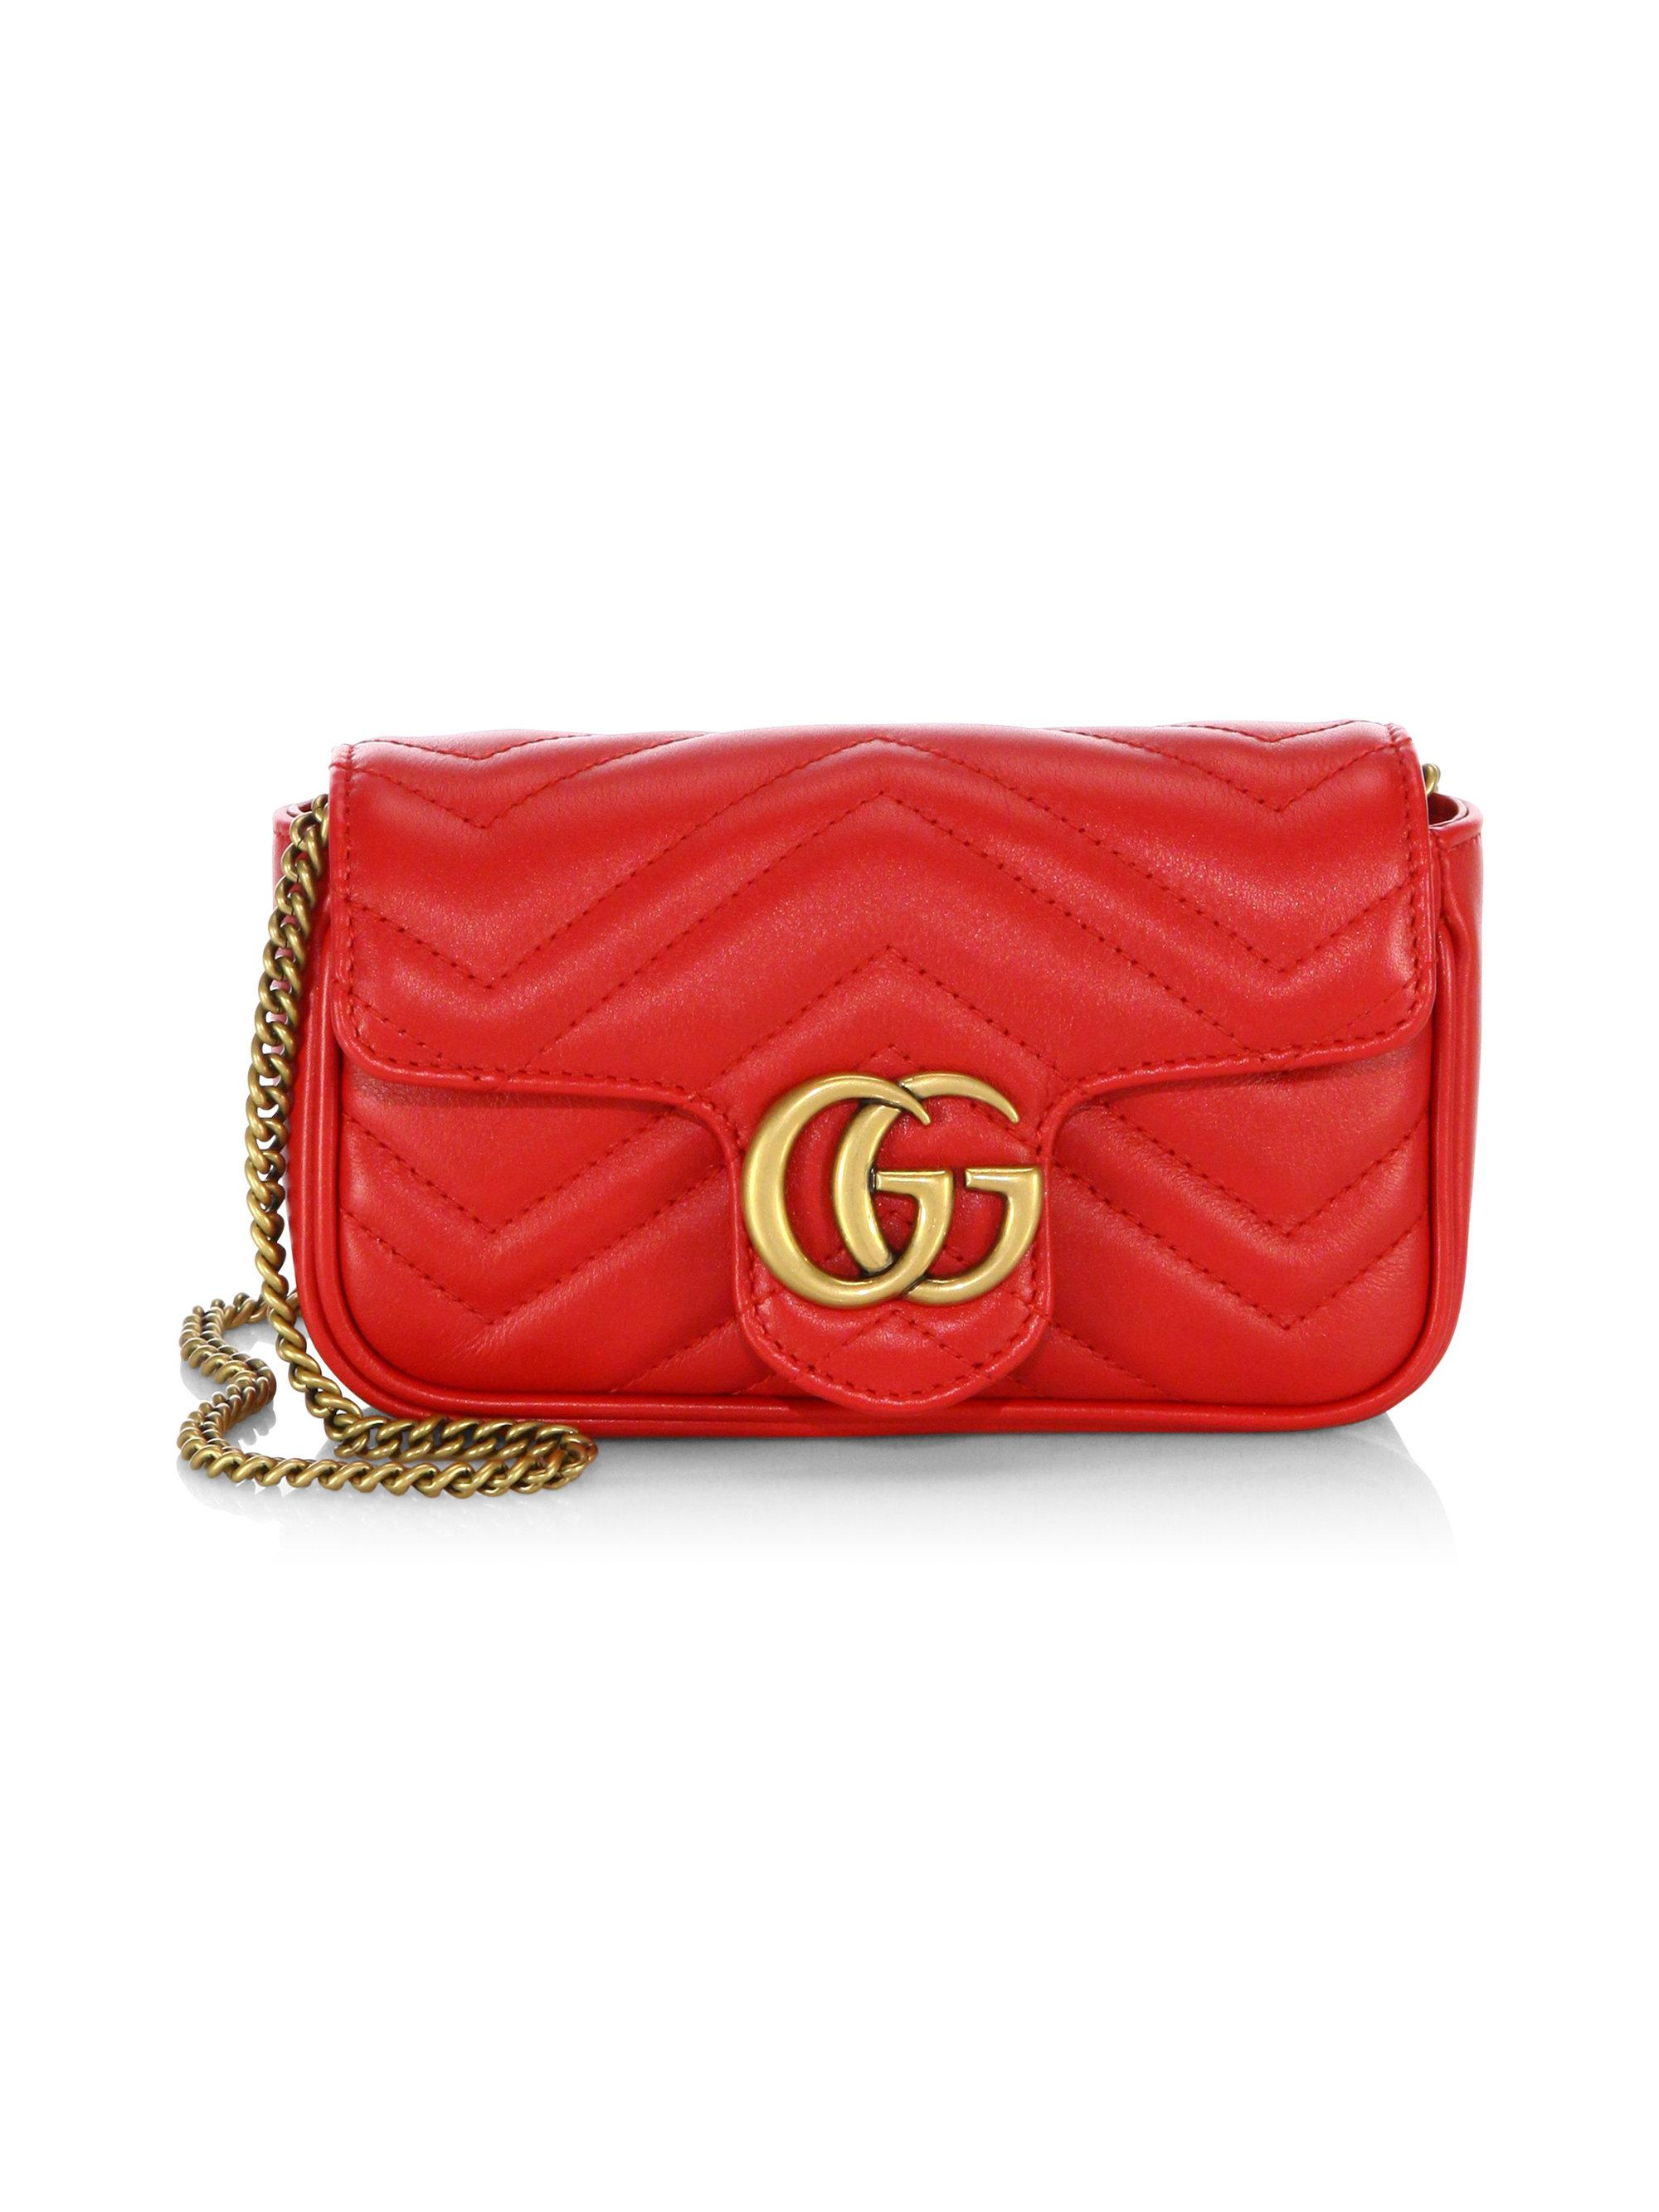 b4585ed4fd6 Lyst - Gucci Gg Marmont Matelasse Leather Mini Chain Shoulder Bag in Red